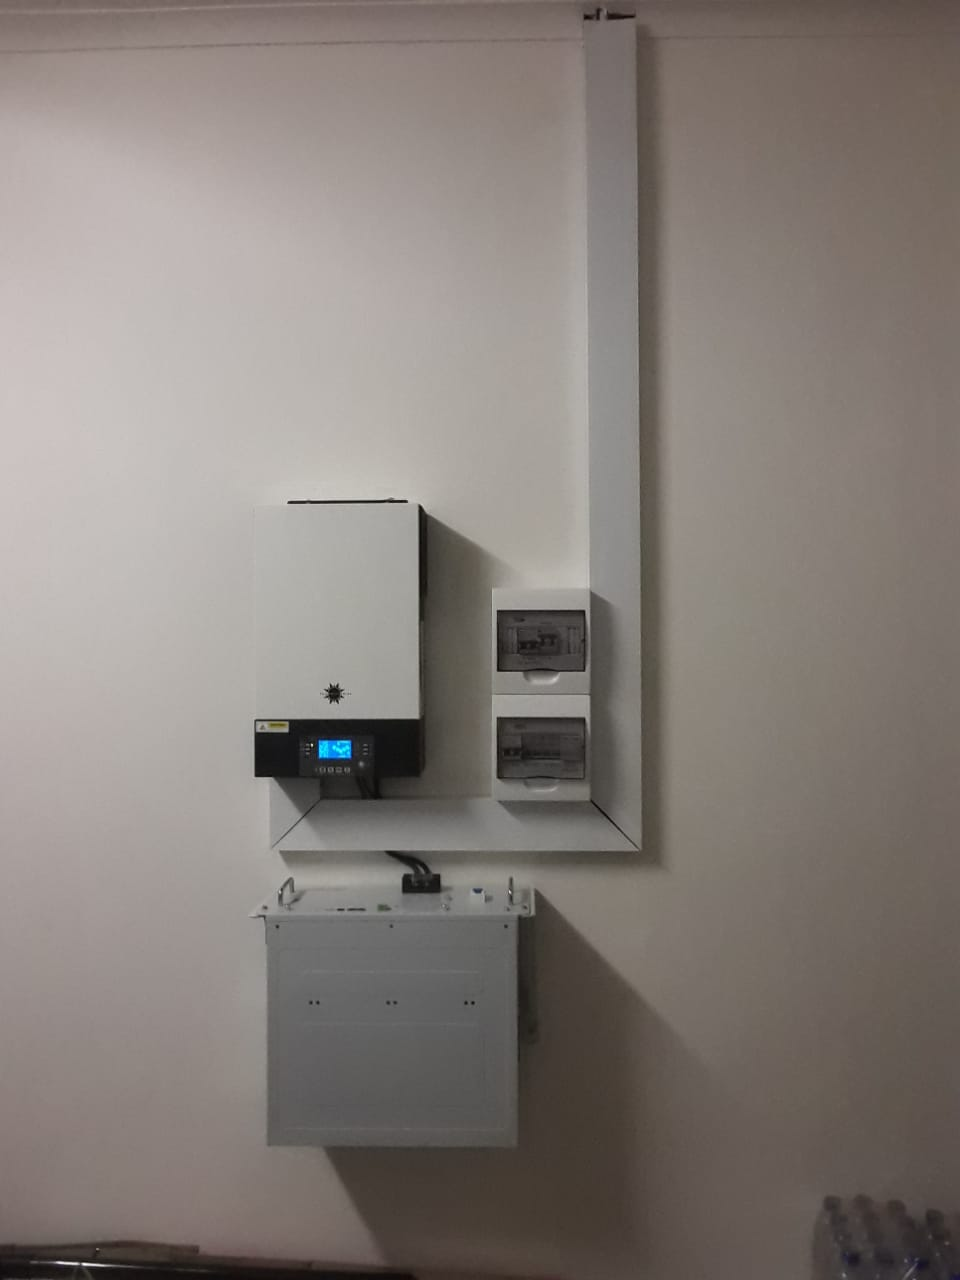 5kw with li-ion battery & 12x 360w panels